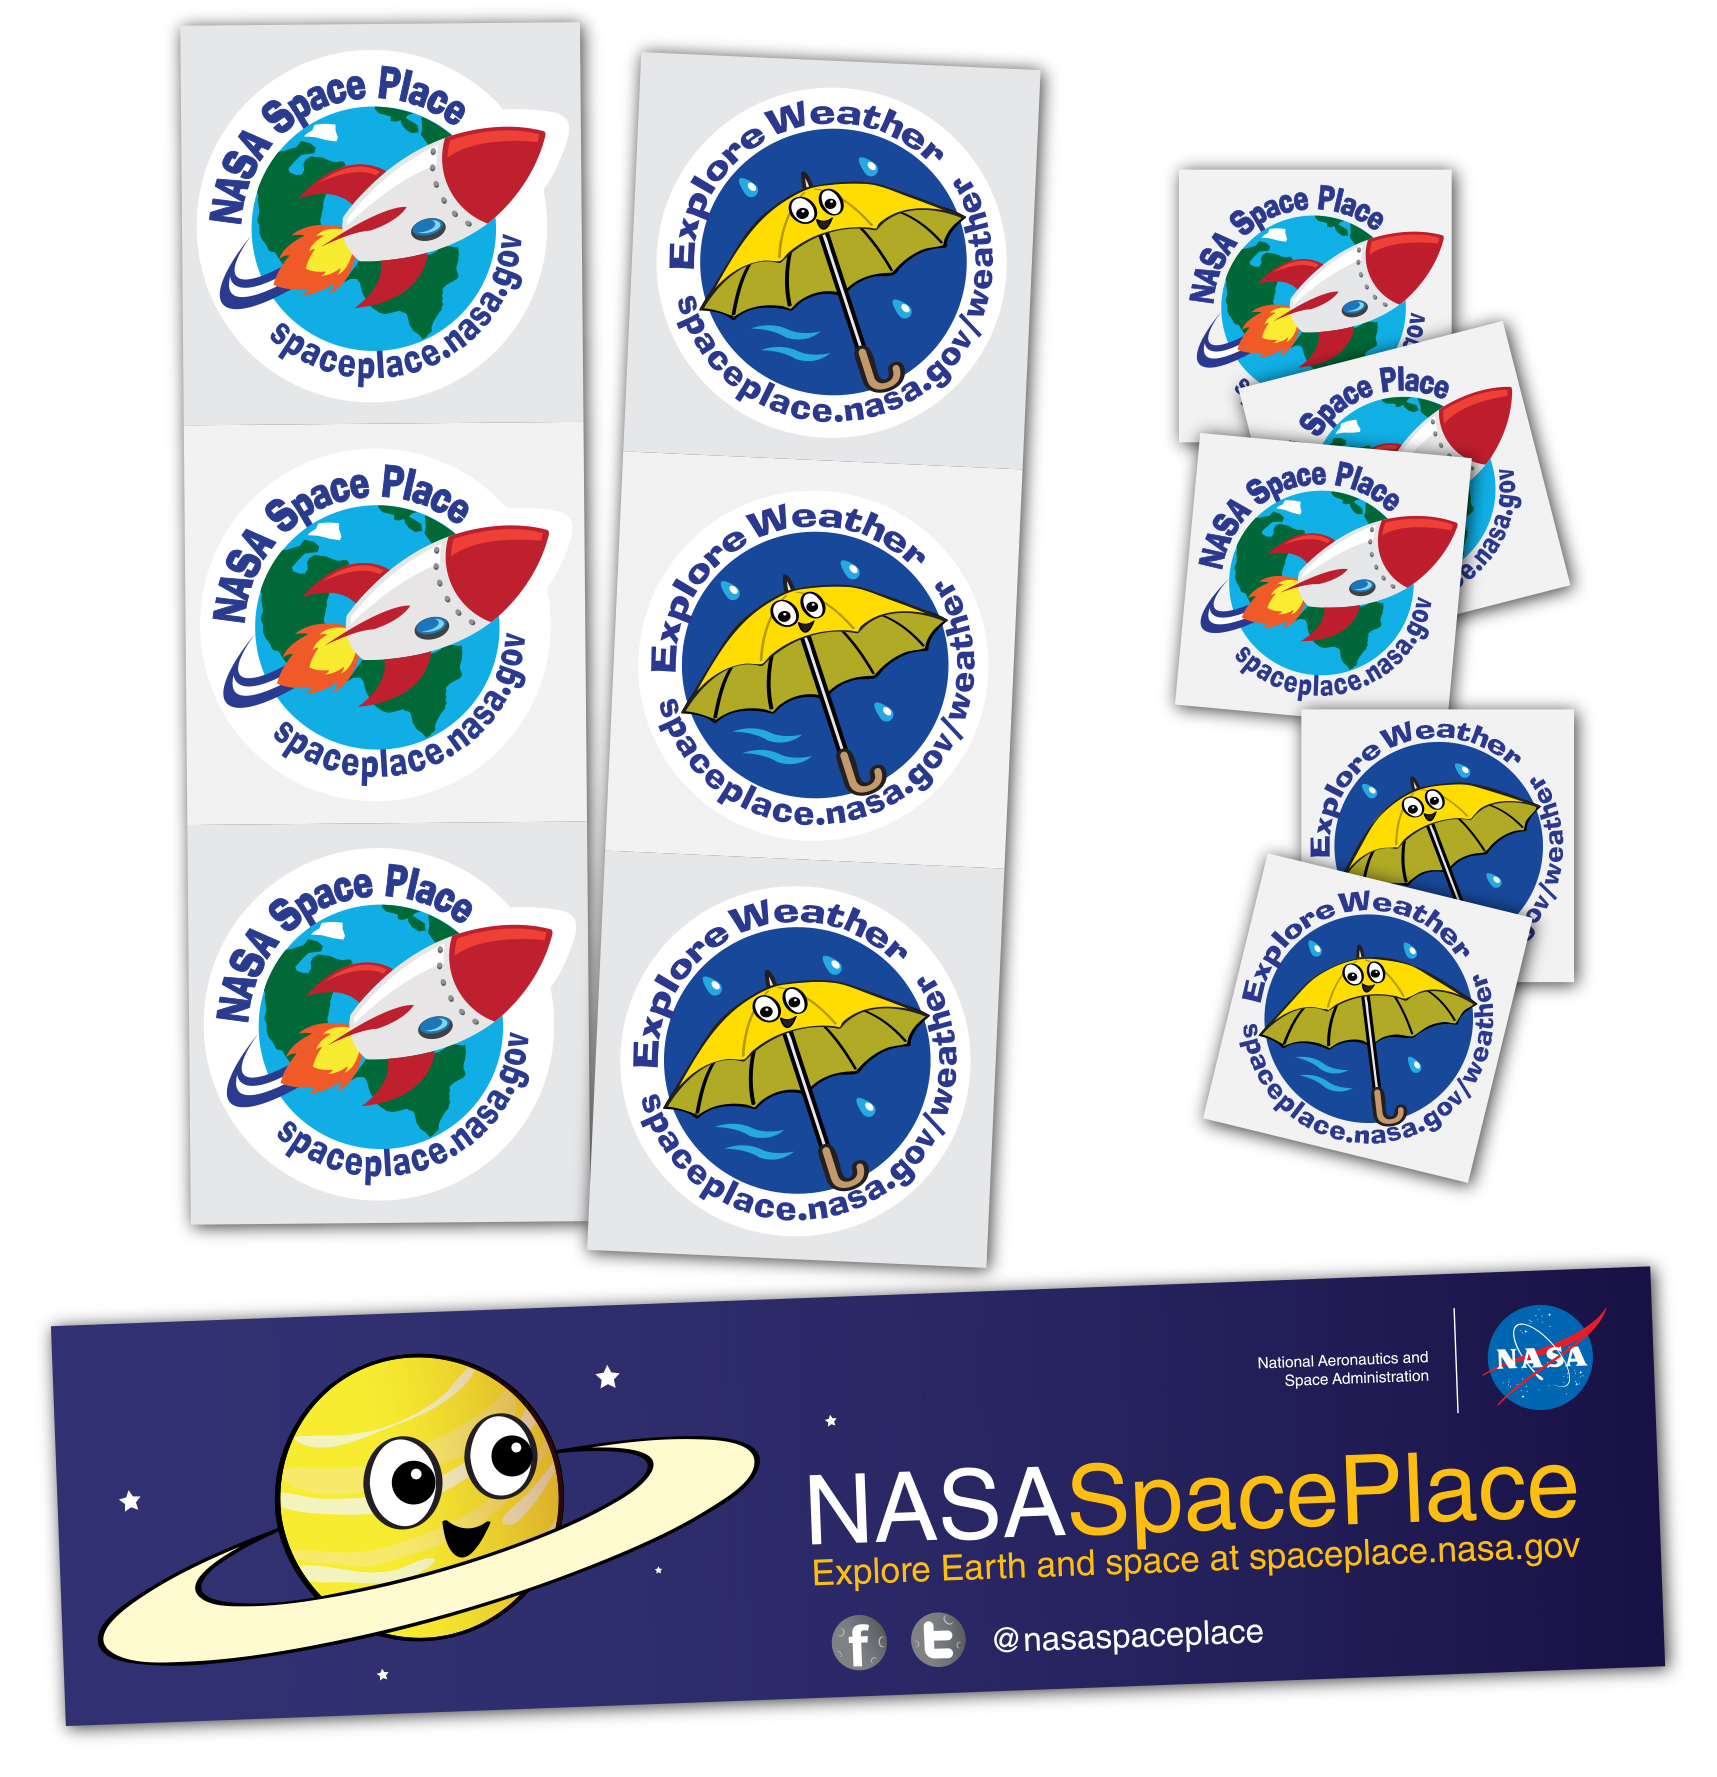 an illustration of Space Place stickers